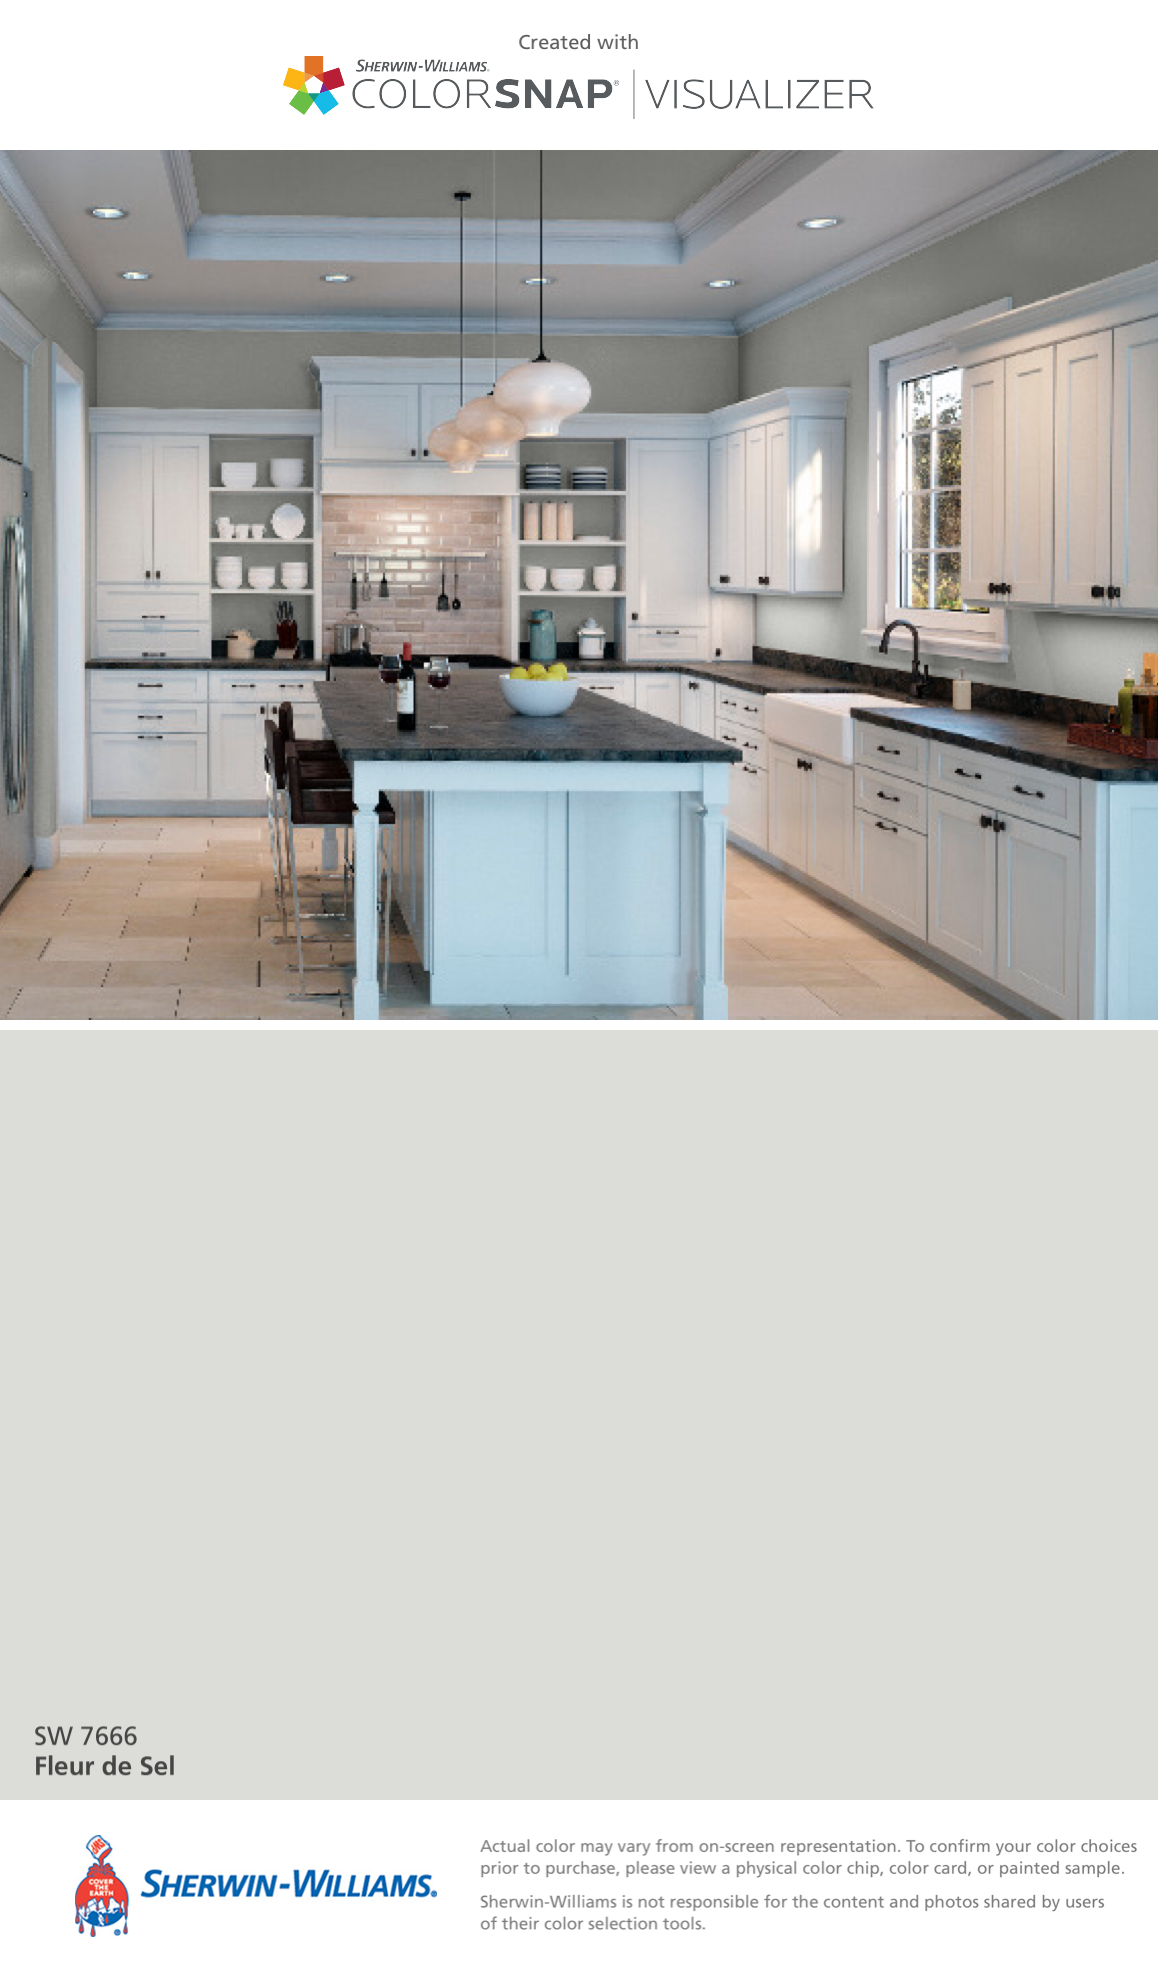 I Found This Color With Colorsnap Visualizer For Iphone By Sherwin Williams Fleur De Sel Sw 7666 Sherwin